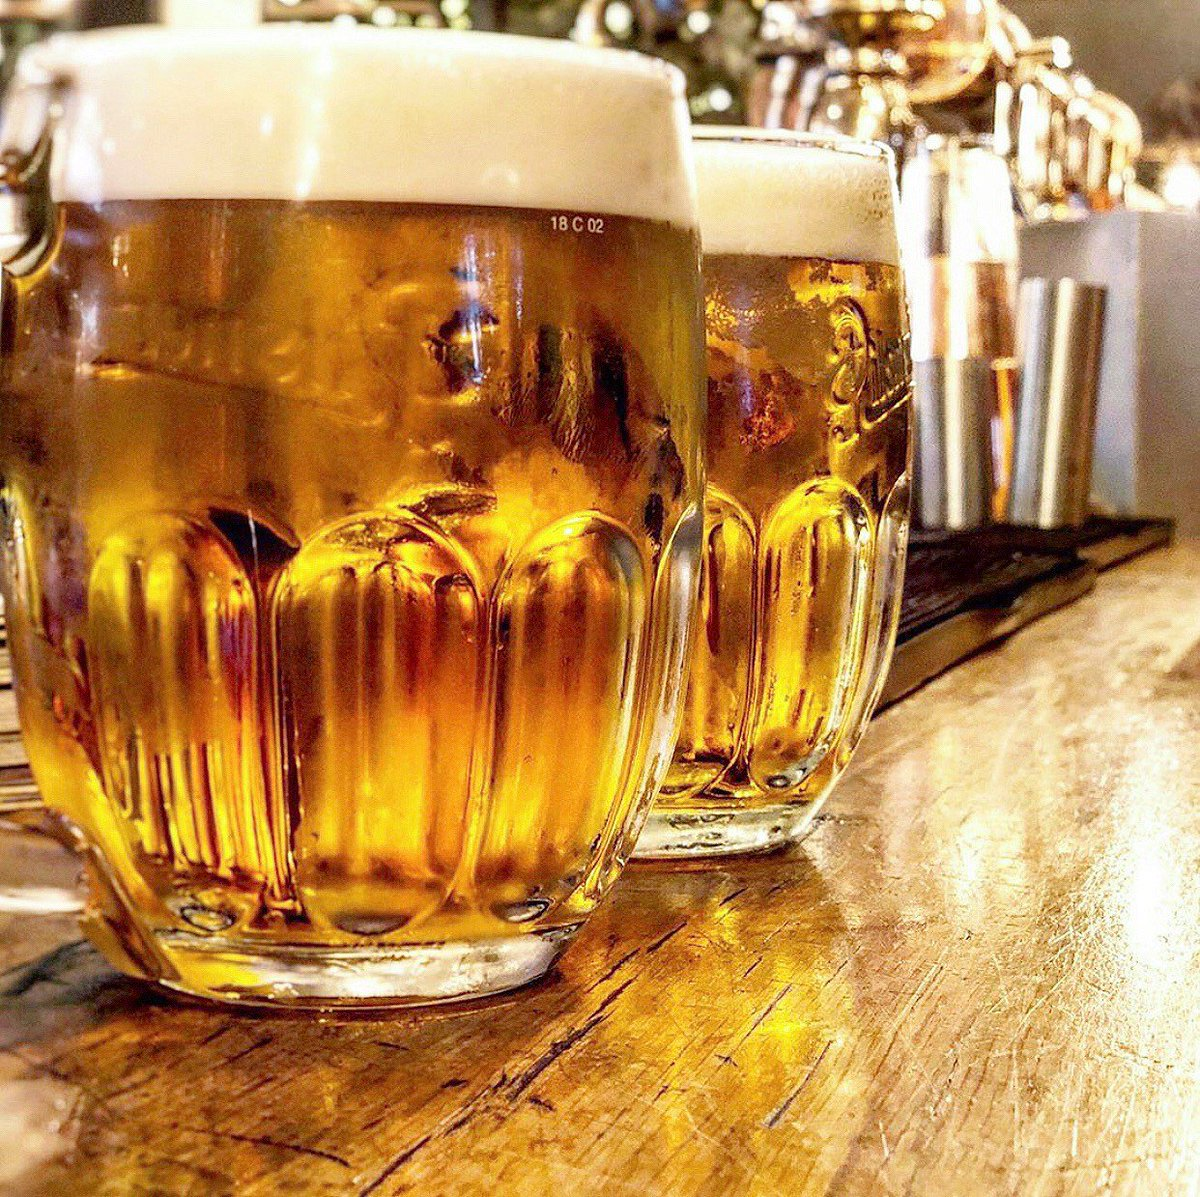 P I L S N E R  U R Q U E L L  Every week we make a 1,500-mile round trip to the Pilsner Urquell brewery in Plzeň, just outside Prague, to fill the 4 x 900 pint copper tanks that dominate our main bar area #beerpalace #pilsner #manchester #albertsschloss